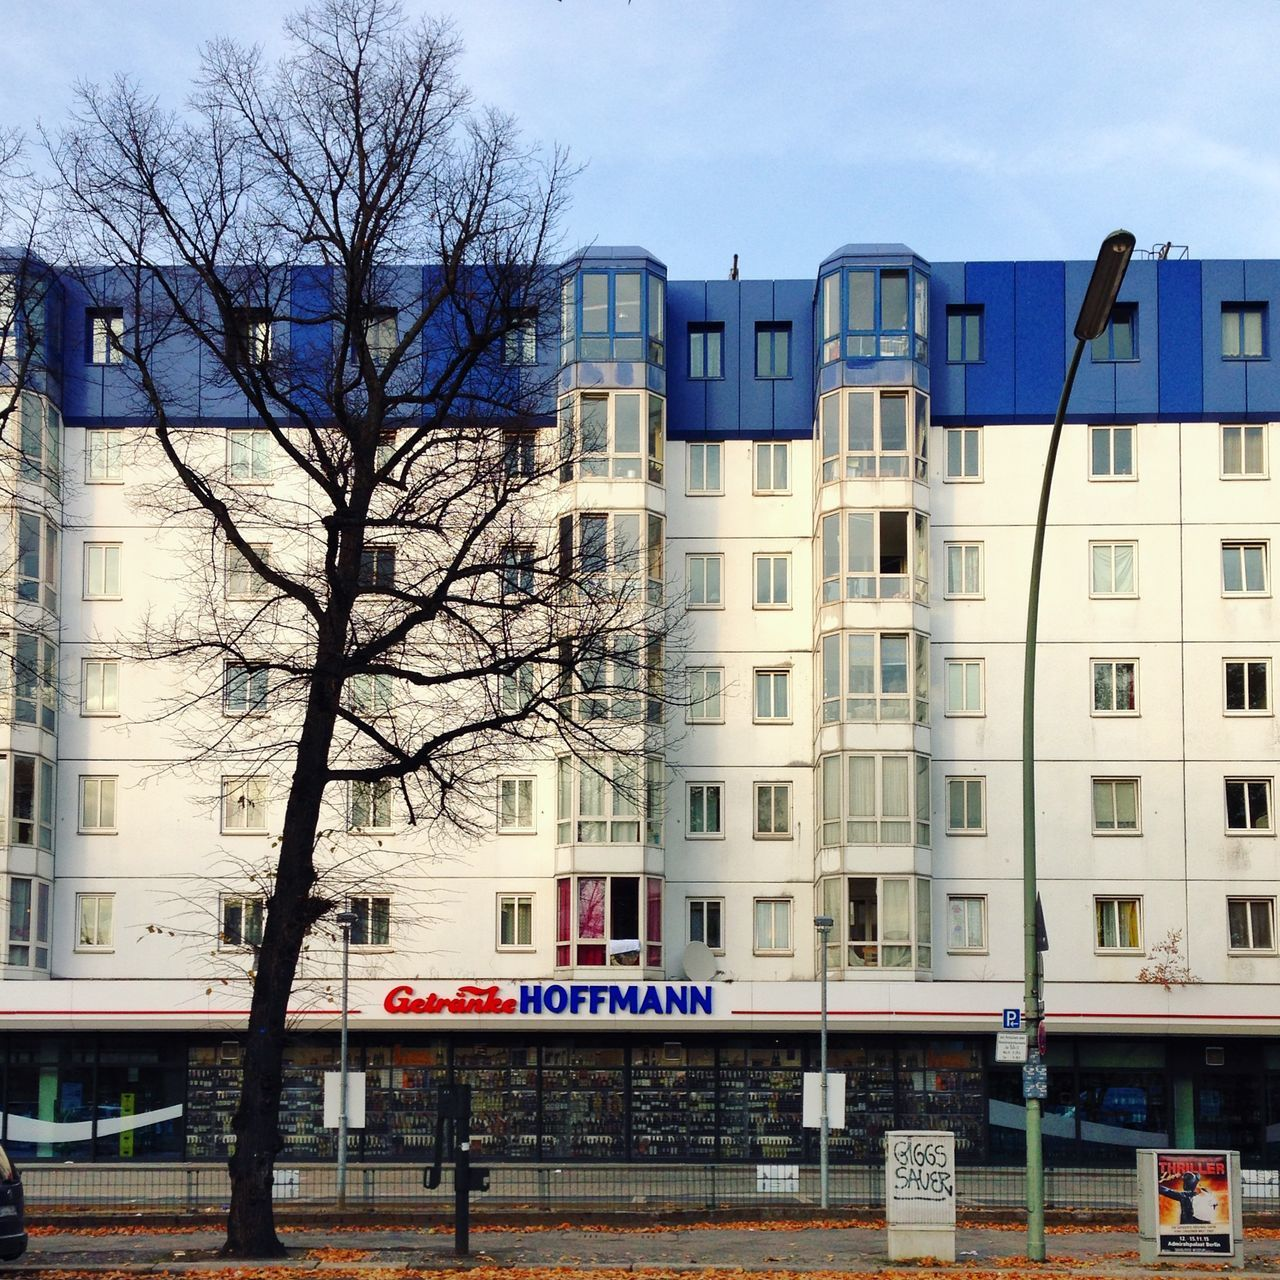 Abstract Architecture Architecture Bare Tree Bare Trees Berlin Photography Berliner Ansichten Berlinstagram Blue Roof Building Exterior Built Structure City Day Façade Lantern Minimal No People Outdoors Plattenbau Prefabricated Houses Sky Straightfacade Streetphotography Tree Tree Trunk